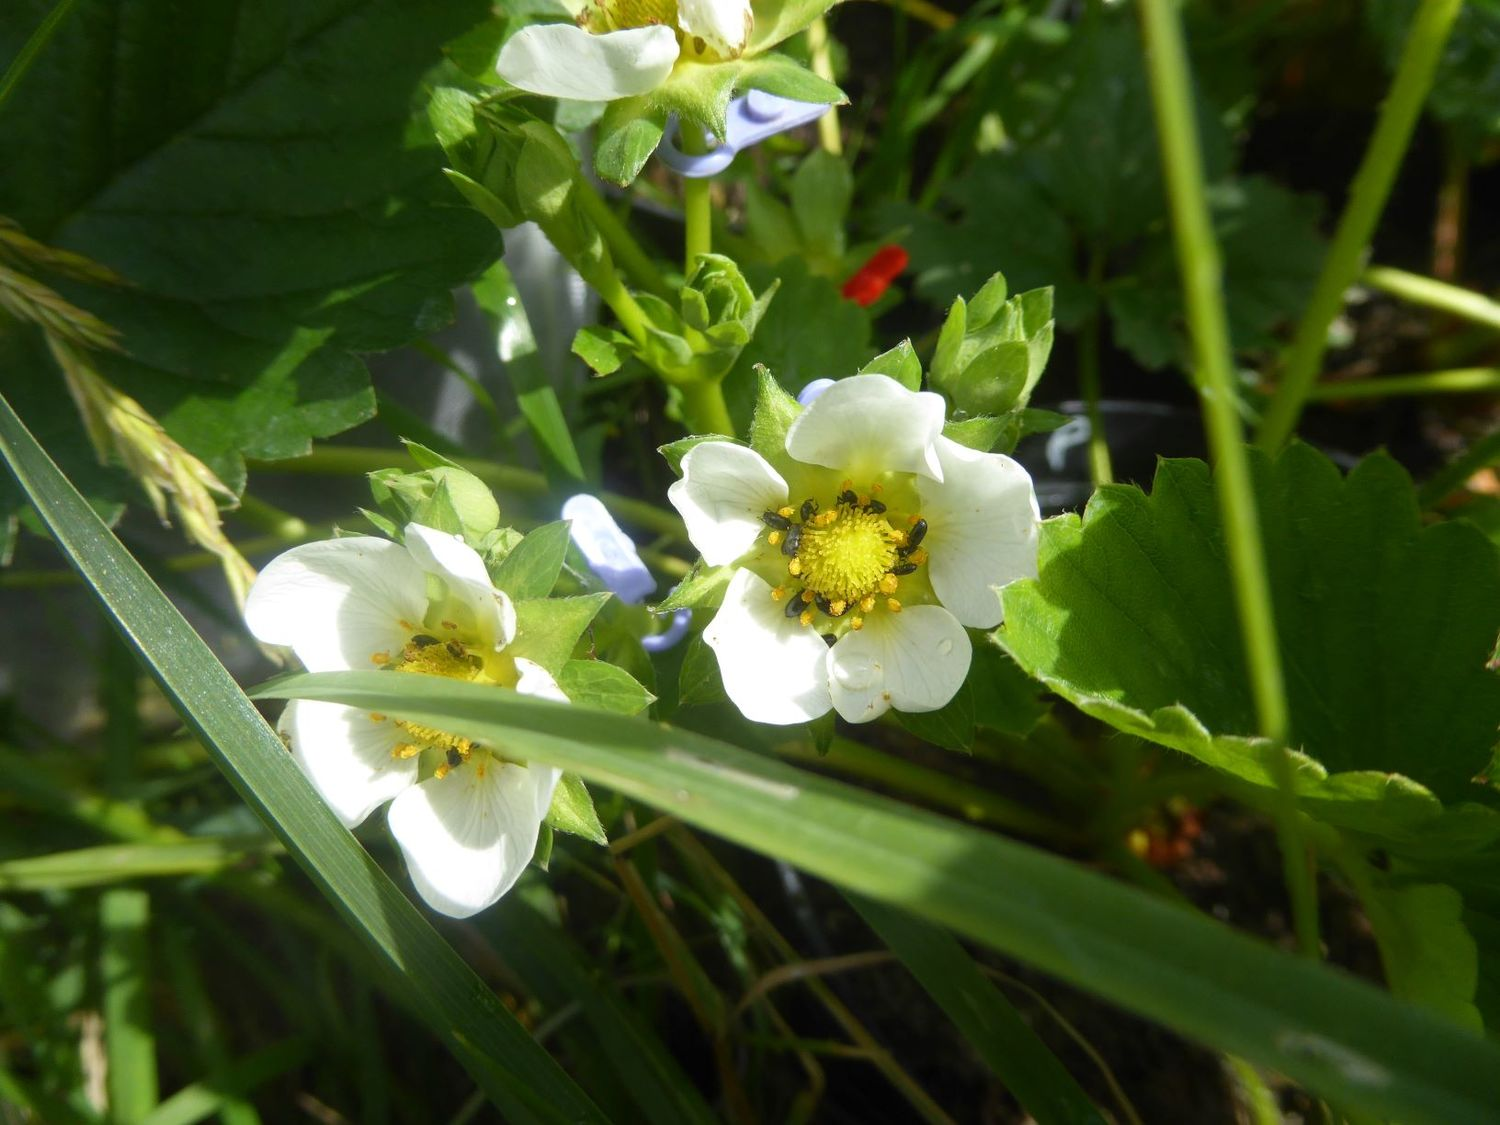 Flower-eating pollen beetles in the blossoms of strawberry plants